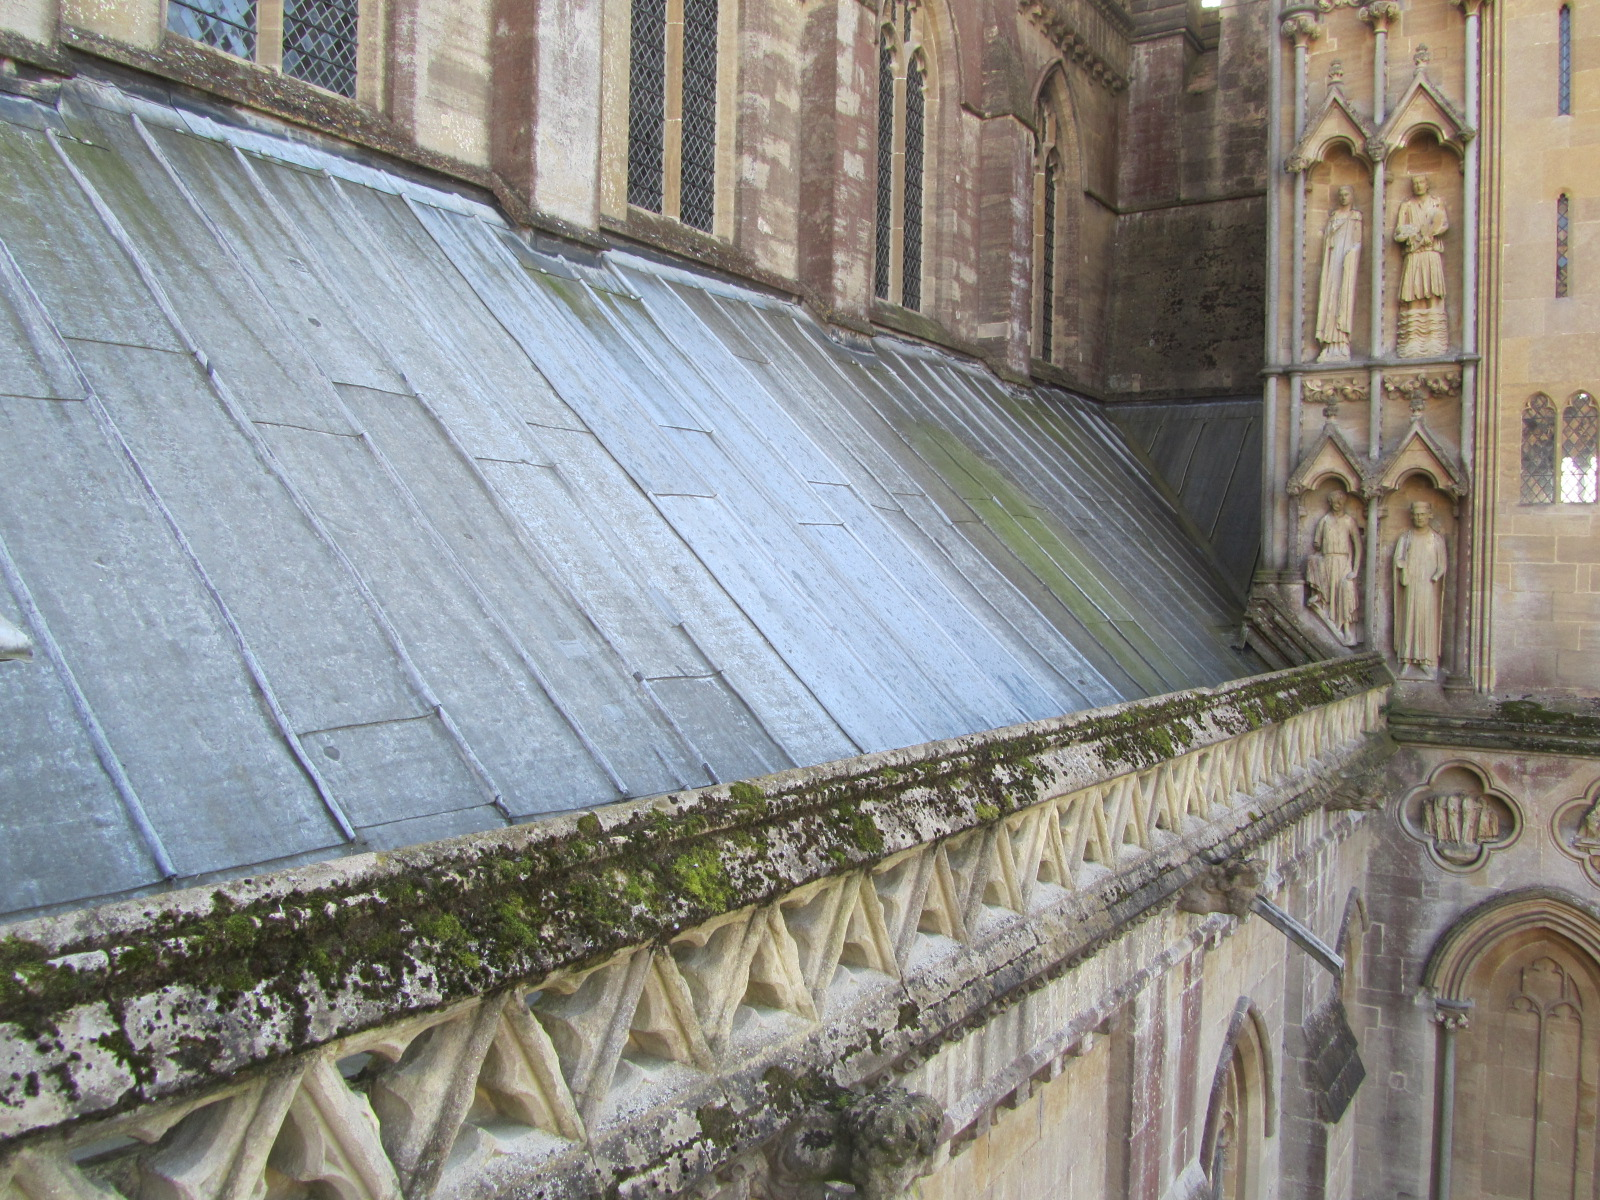 Prior to works: Numerous lead sheets had slipped causing water ingress and decay to the structure below